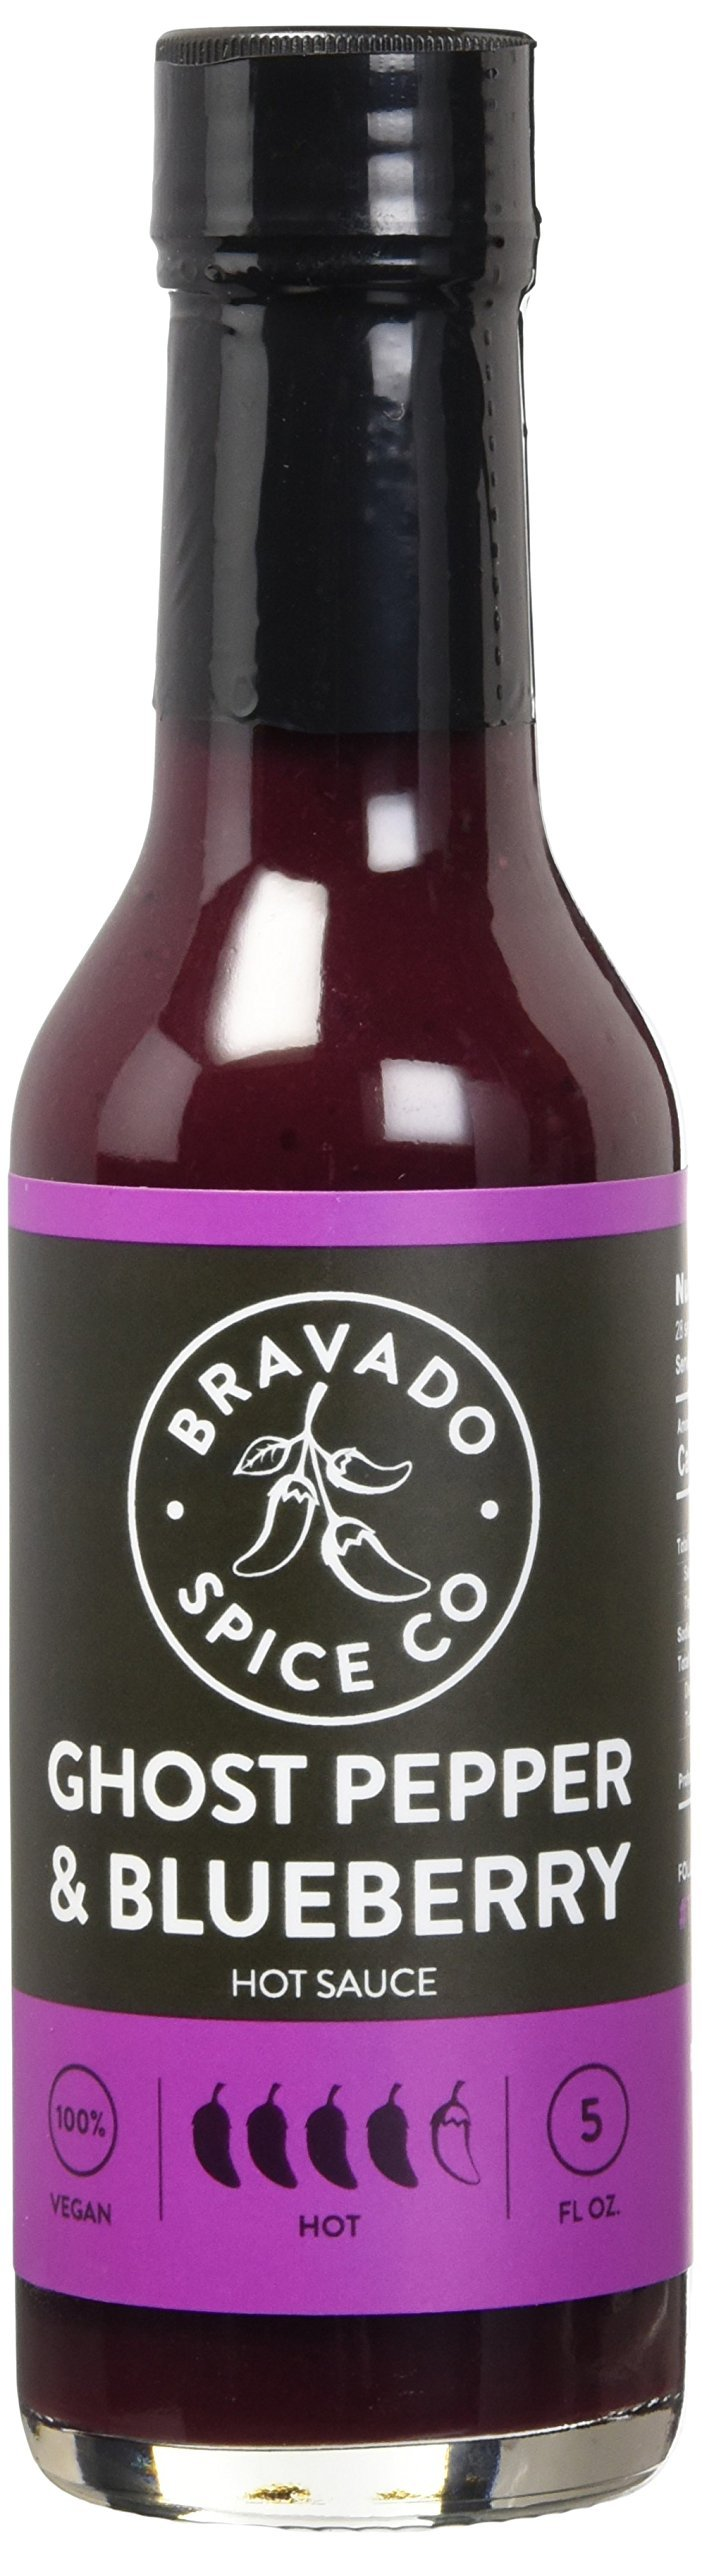 Bravado Spice Hot Sauce, Ghost Pepper and Blueberry